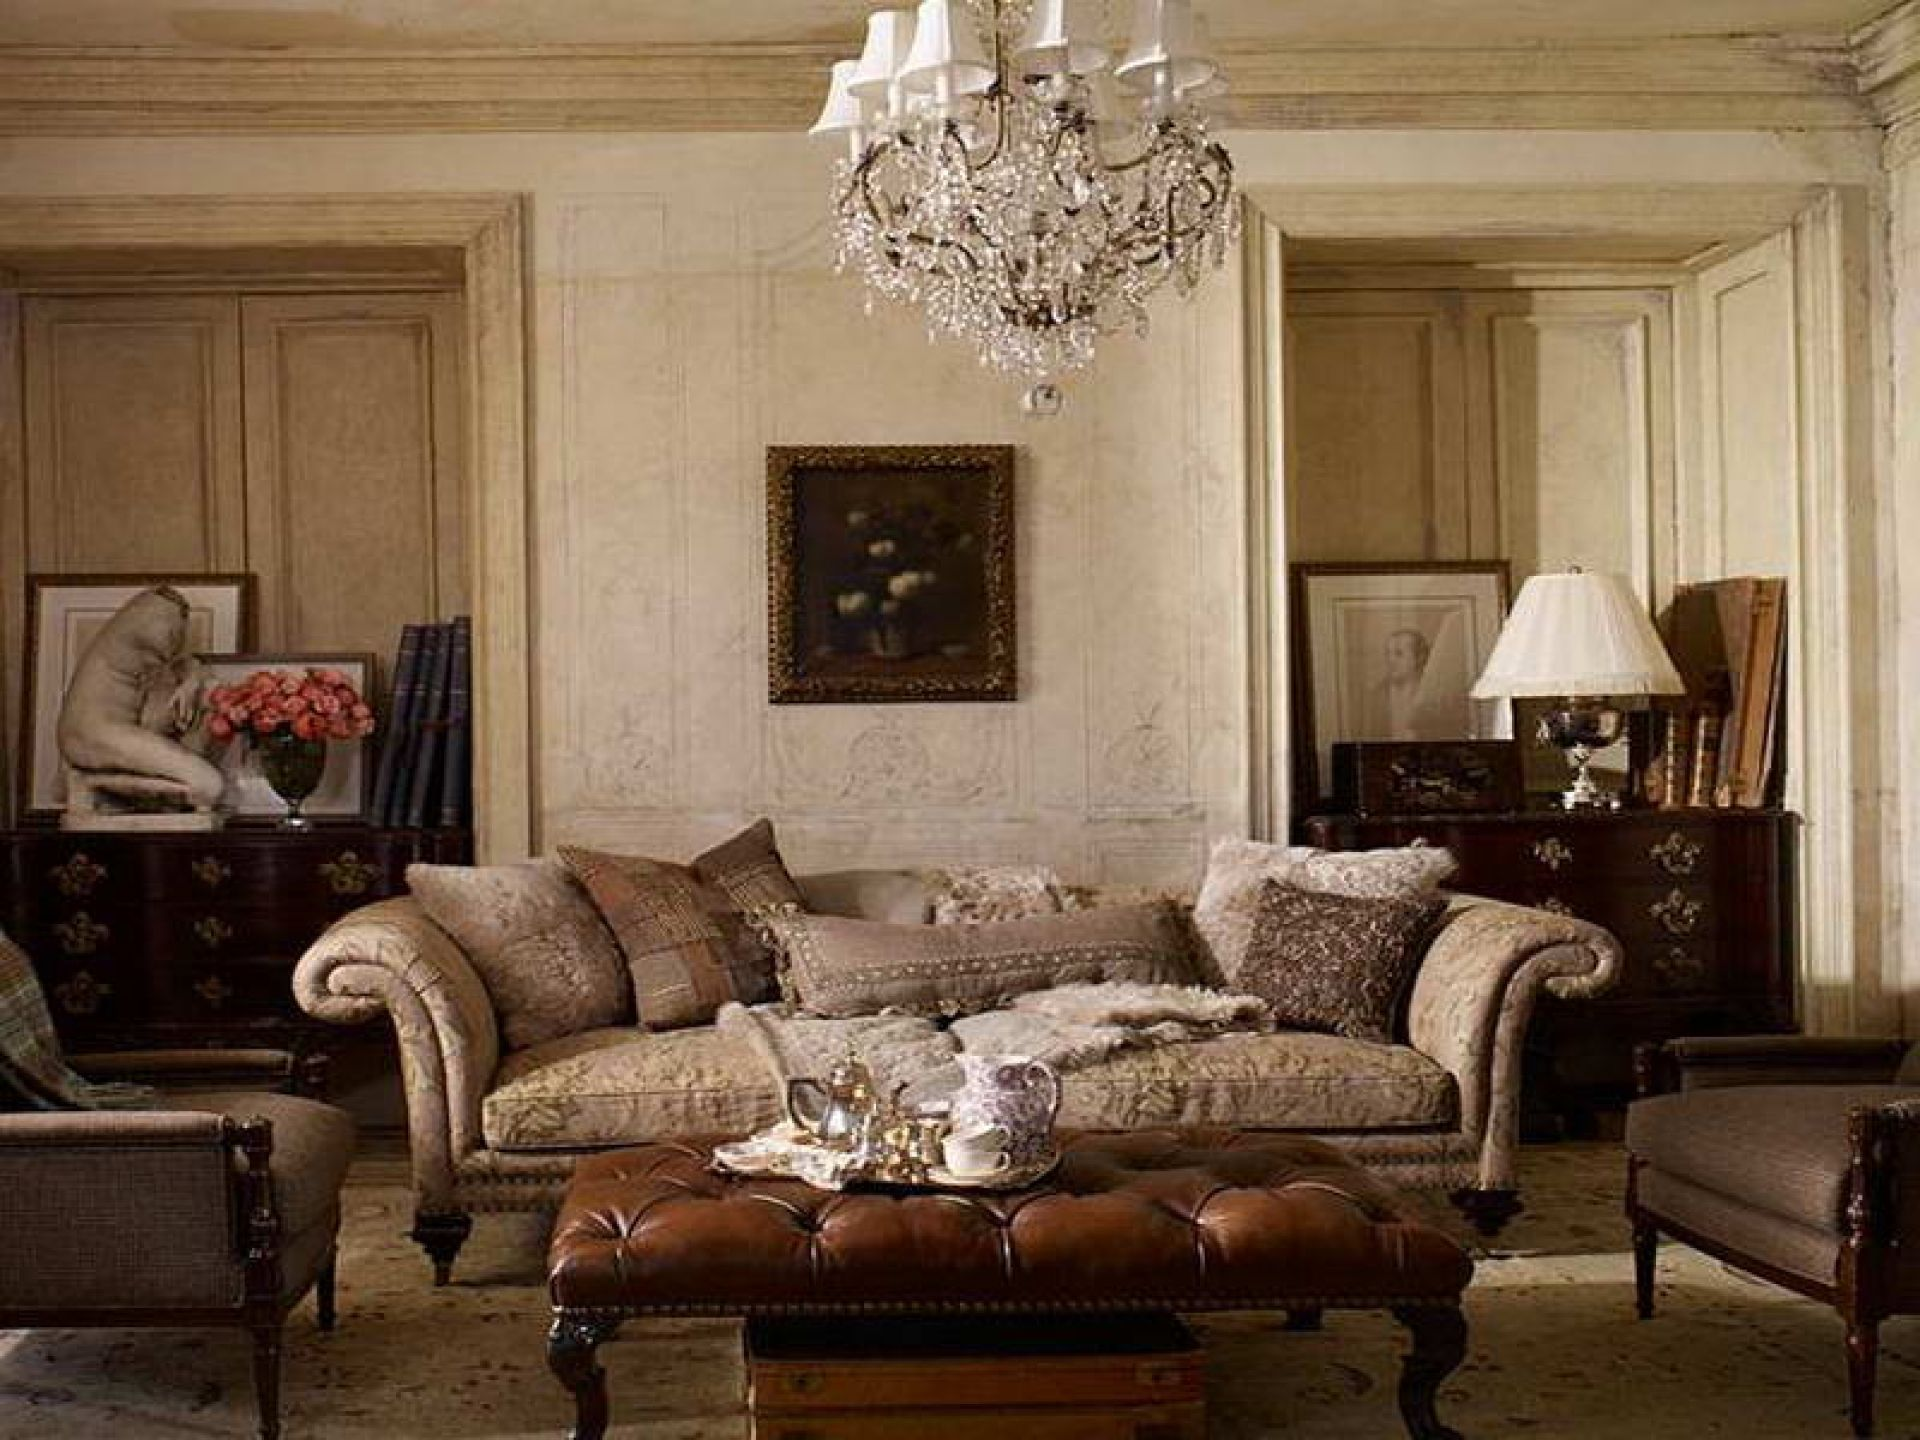 Home Furnishings From Ralph Lauren Home, Modern Interior Decorating Ideas